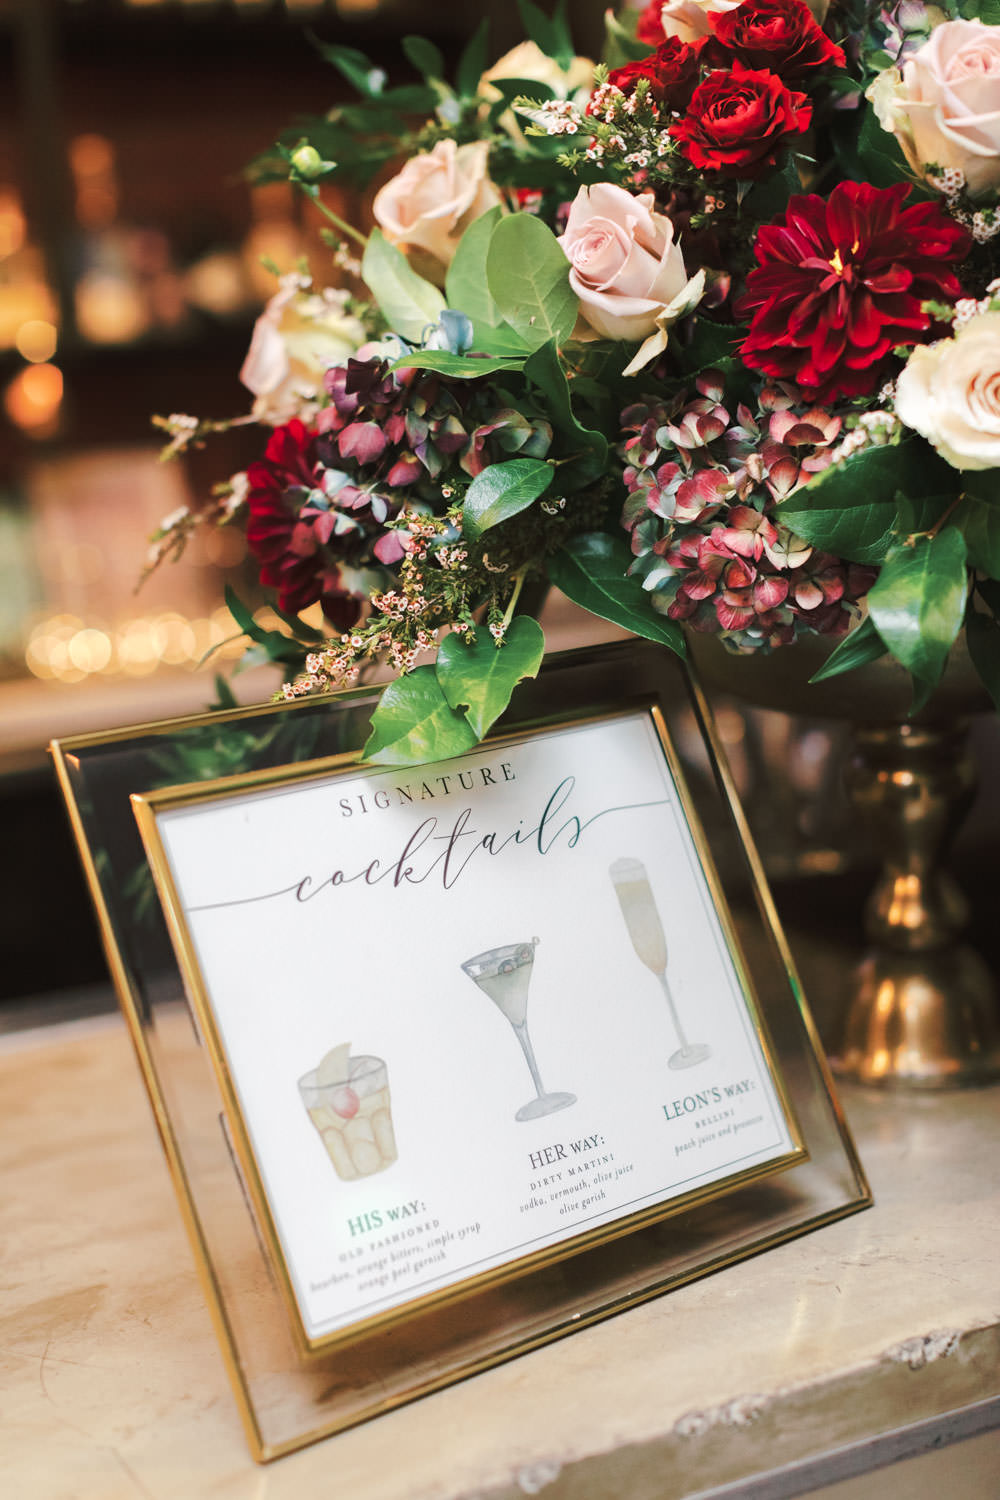 Cocktail bar floral arrangement and custom watercolor cocktail menu with red mauve green and ivory, Green Acre Campus Pointe Wedding San Diego, Cavin Elizabeth Photography